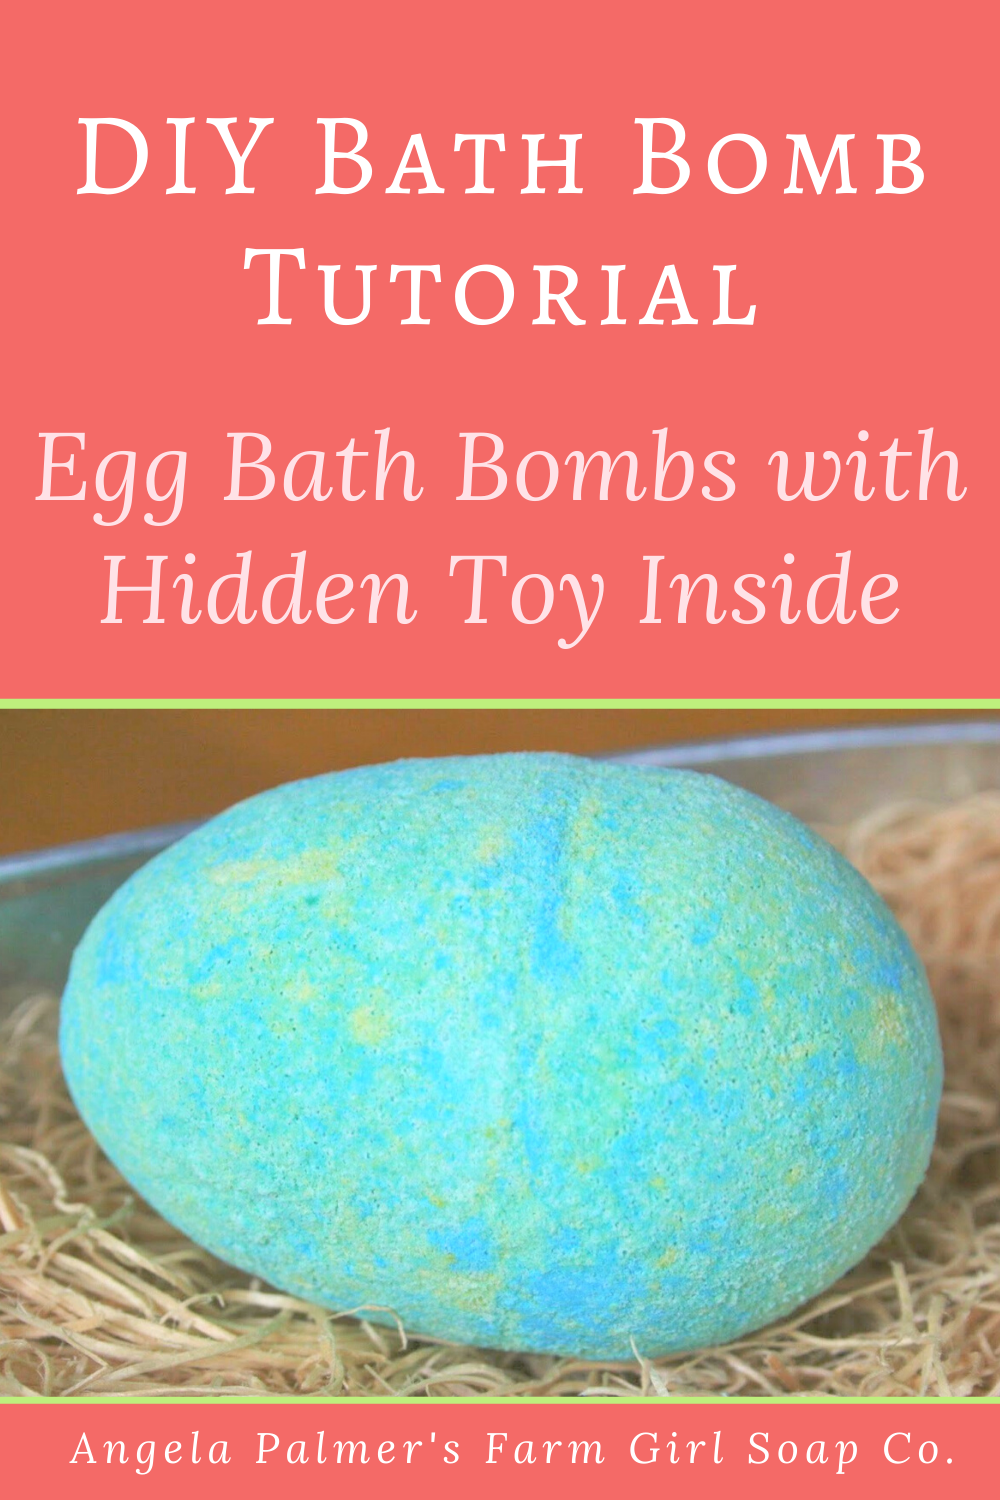 "This recipe for DIY bath bombs for kids is super fun! The egg shaped bath bombs are made with a toy hidden inside. Kids get to watch the eggs ""hatch"" in their bath. Get the bath bomb tutorial now. By Angela Palmer at Farm Girl Soap Co."